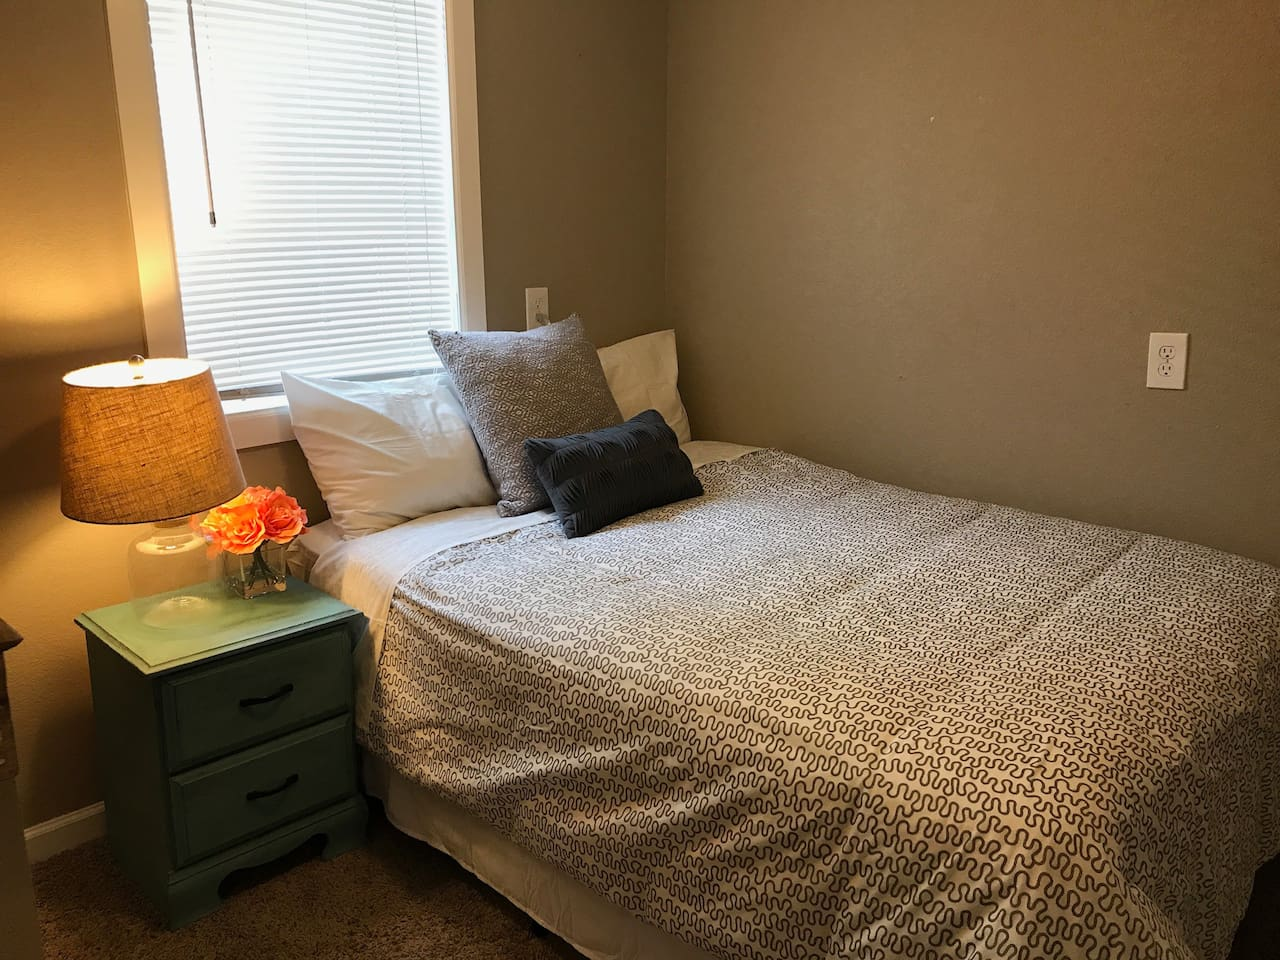 Bedroom 1 - Full size bed